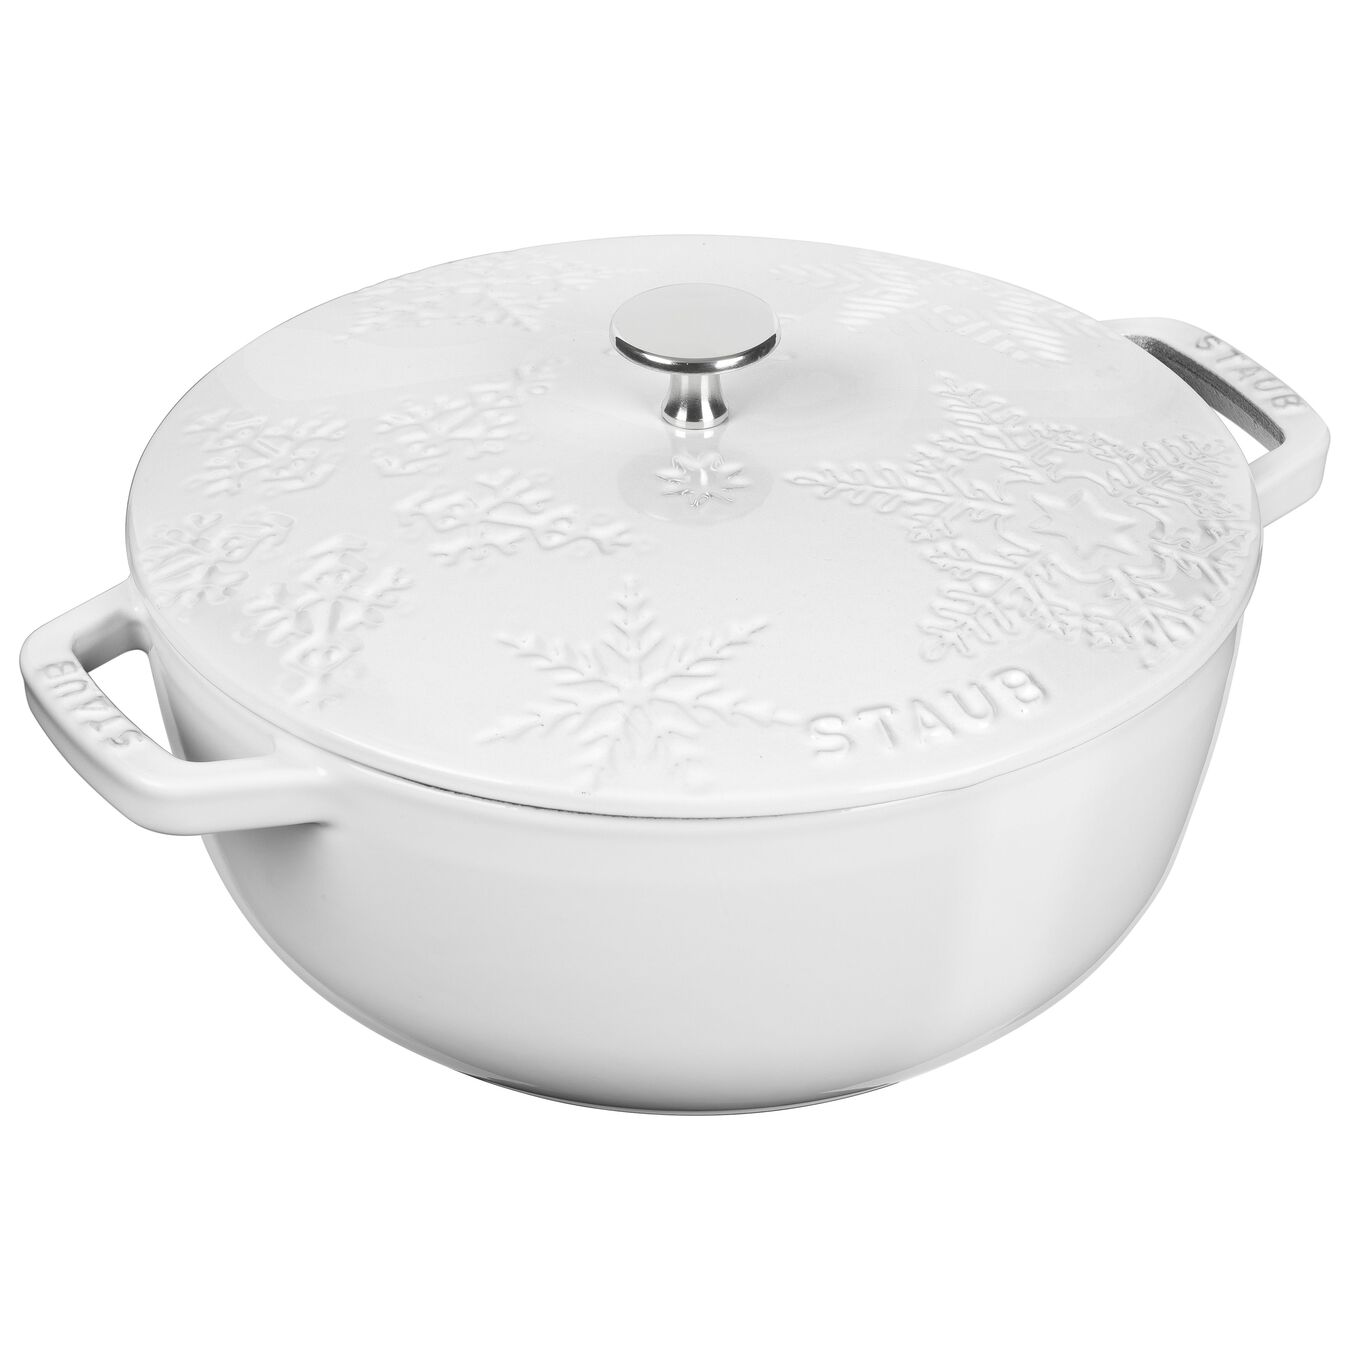 3.75-qt round French oven, White,,large 1